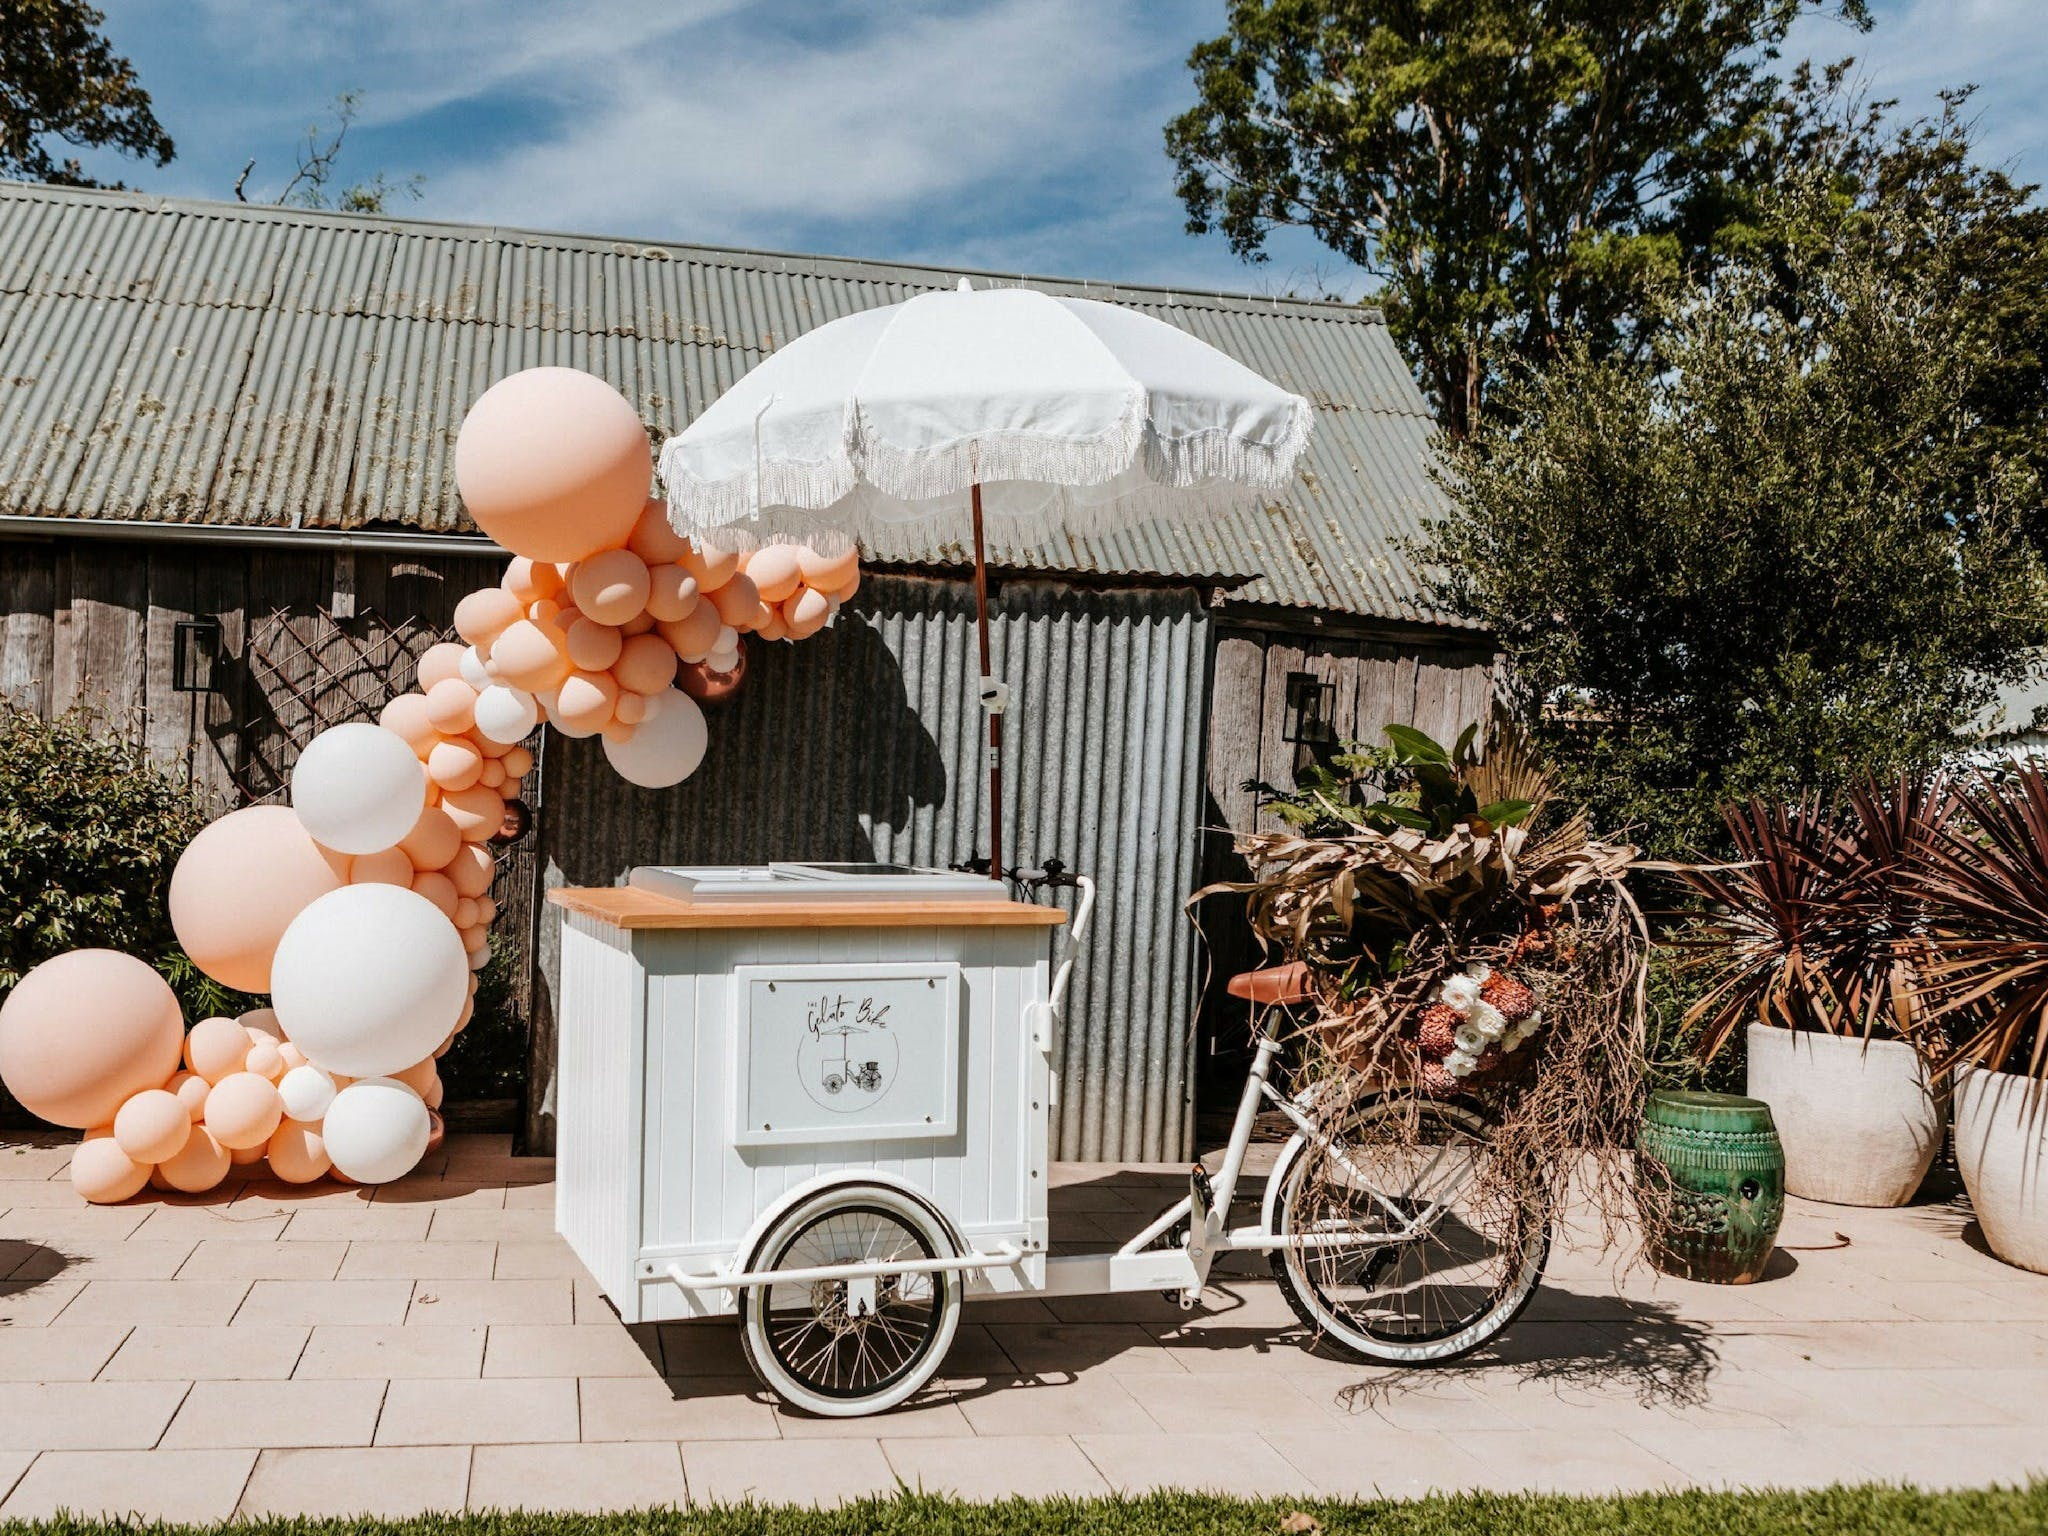 The Gelato Bike - New South Wales Tourism